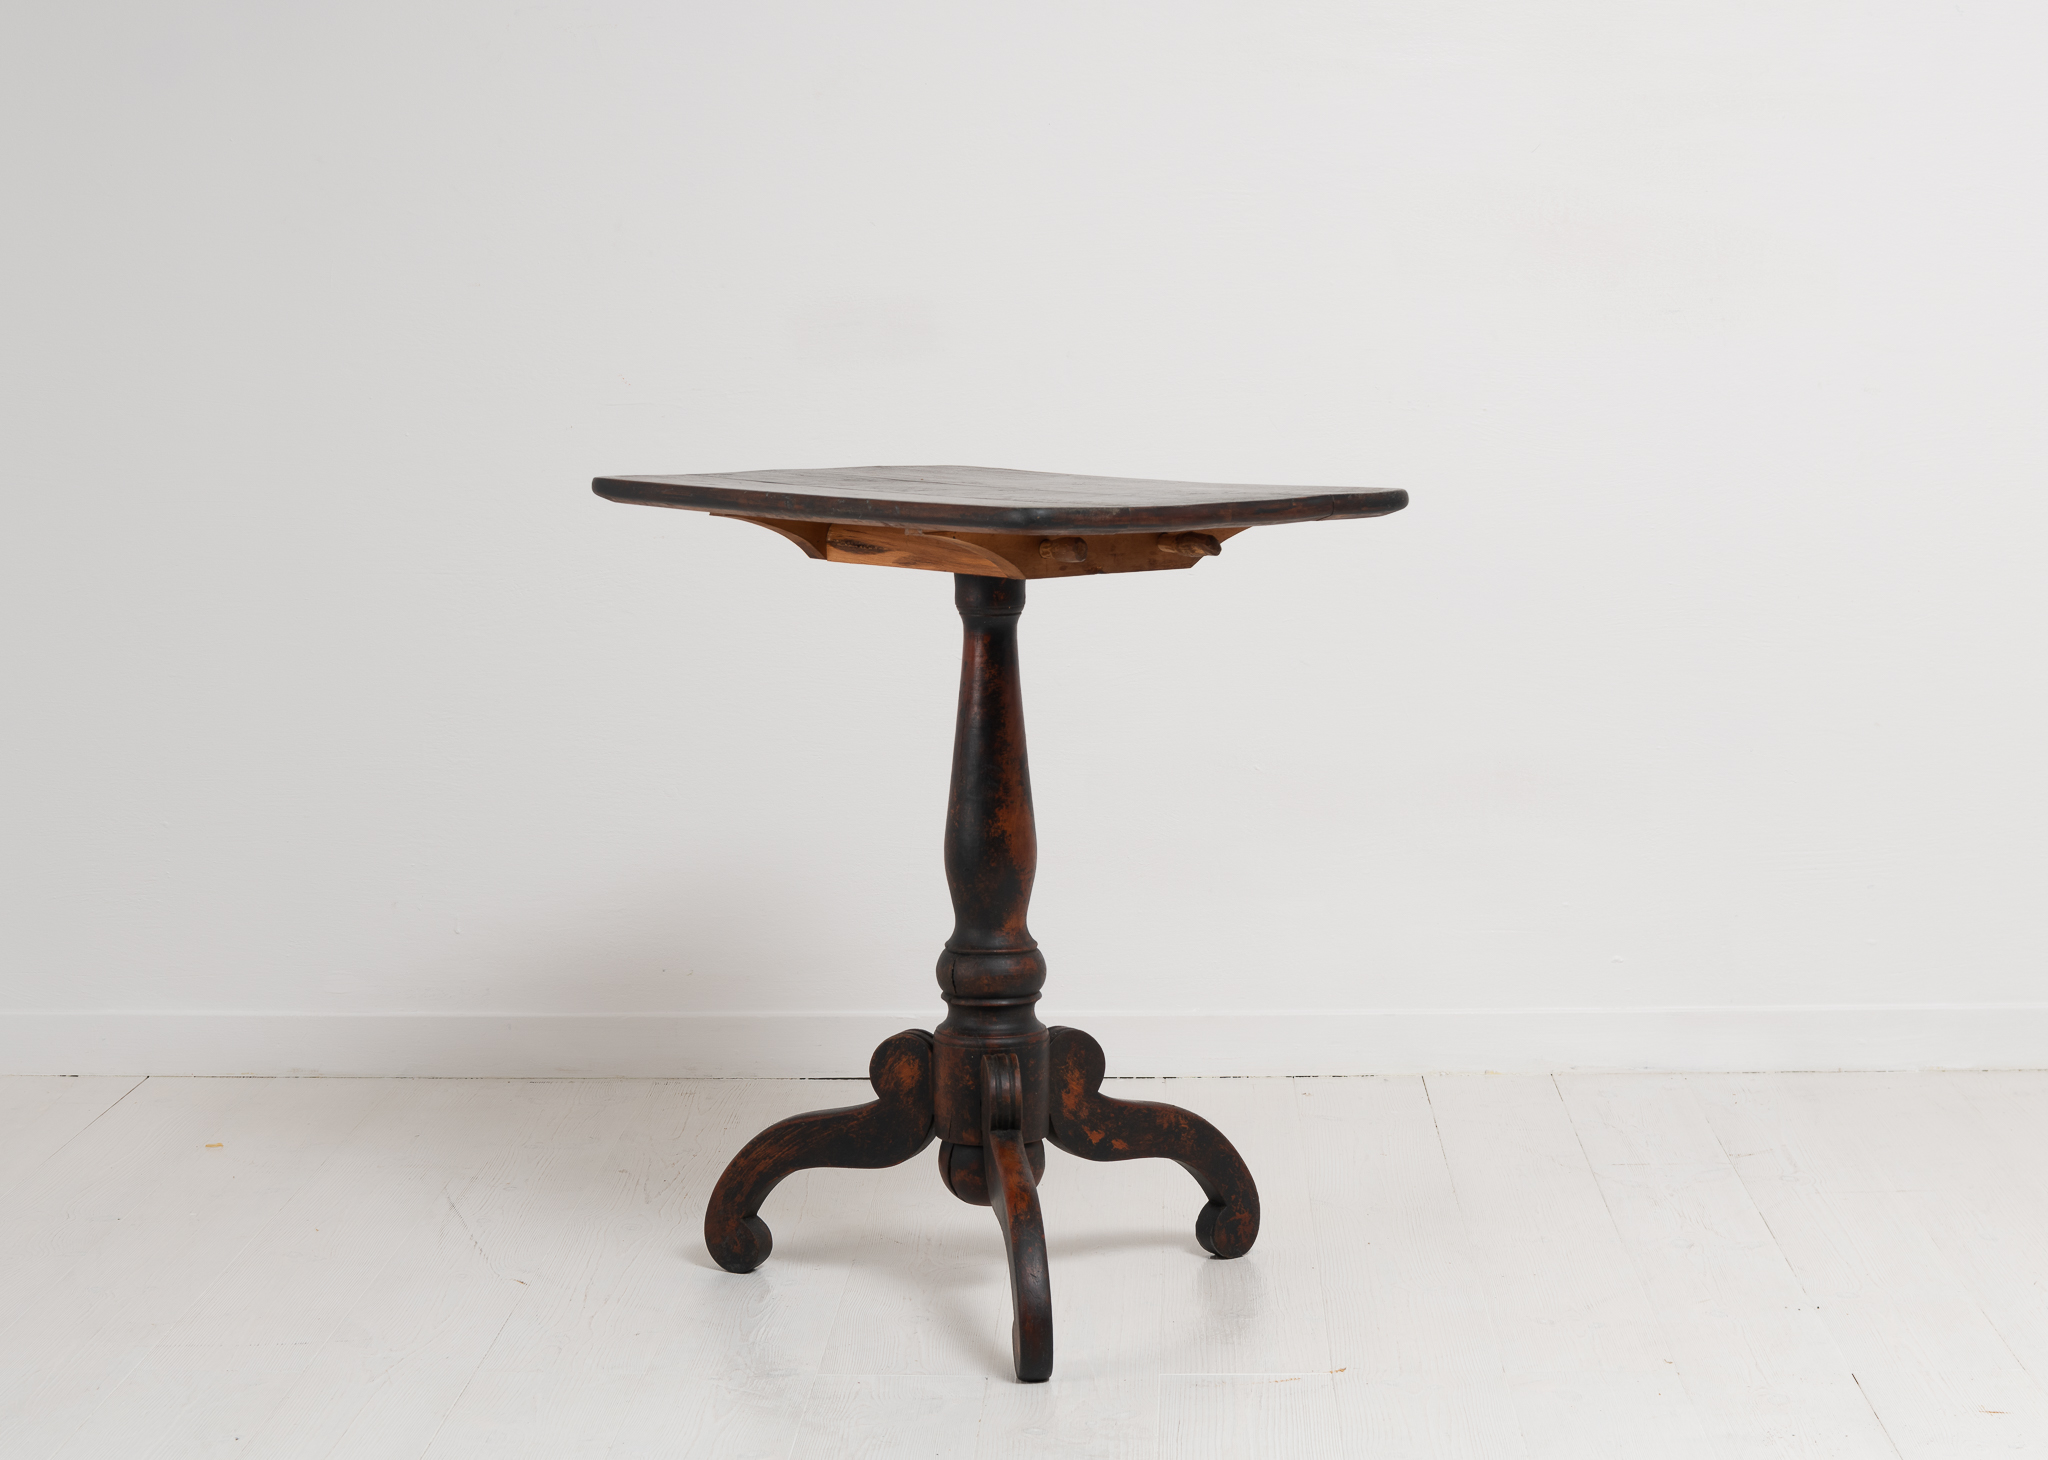 Smaller black tilt-top table with a rectangular table top. The table is from Sweden around 1850 and has a healthy and solid frame. The table is also stable.